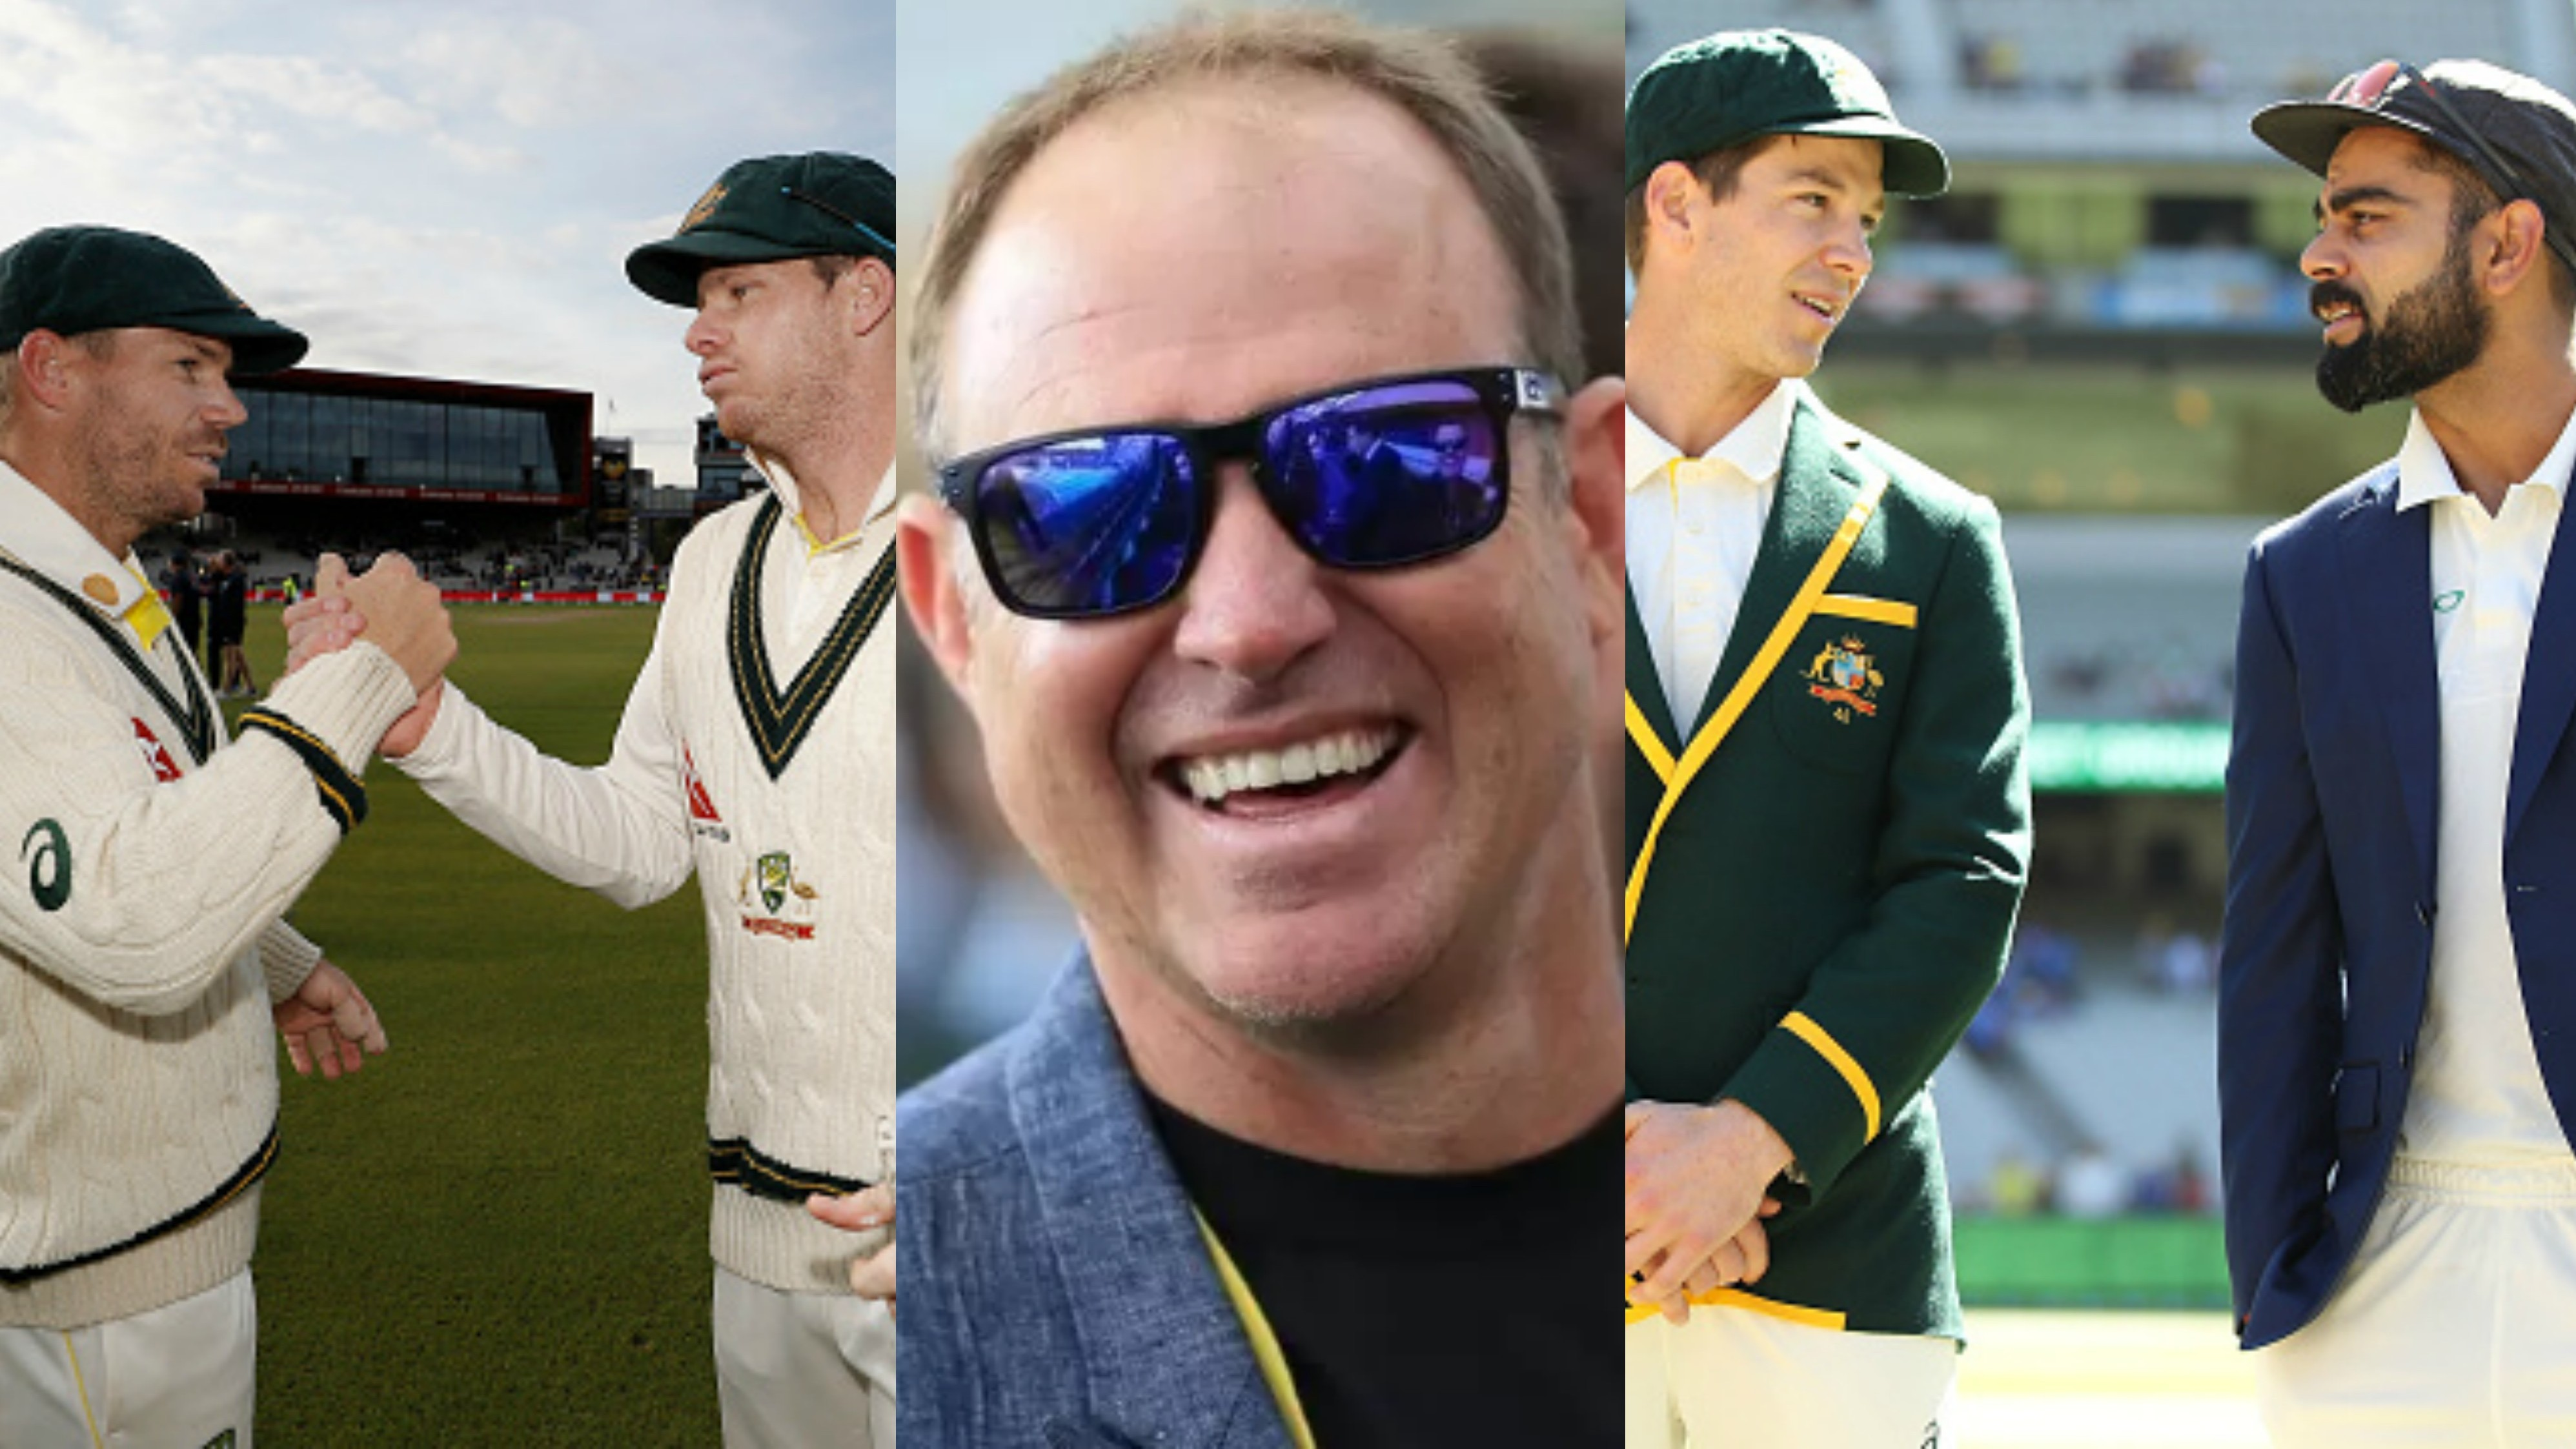 With Warner and Smith back, Australia red-hot favorites against India, says Matthew Hayden